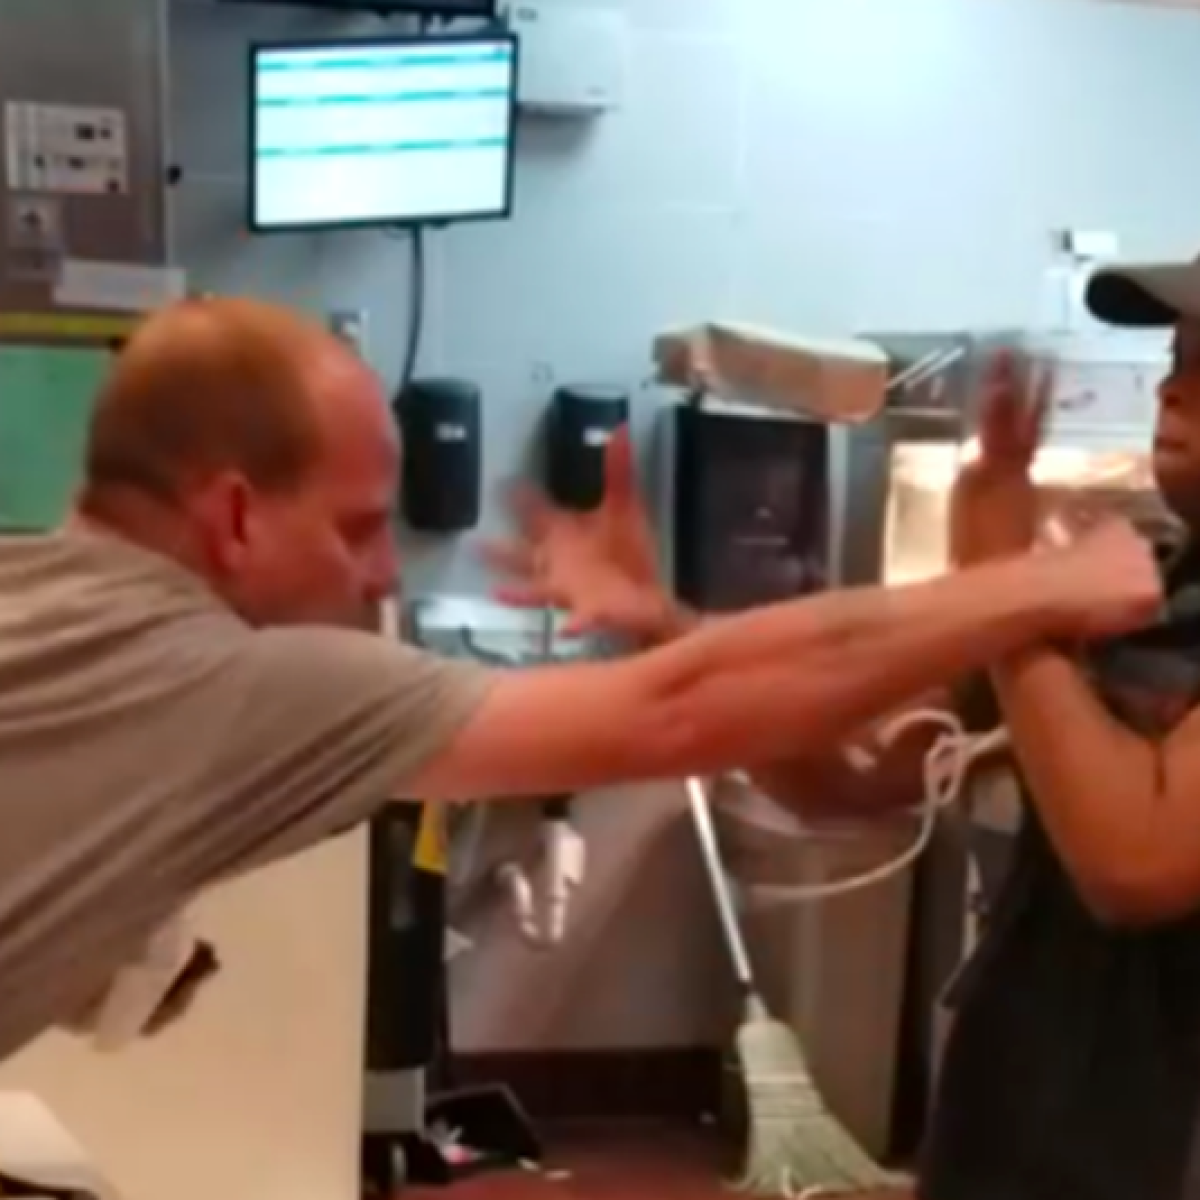 Florida McDonald's Employee Attacked By Customer At Work